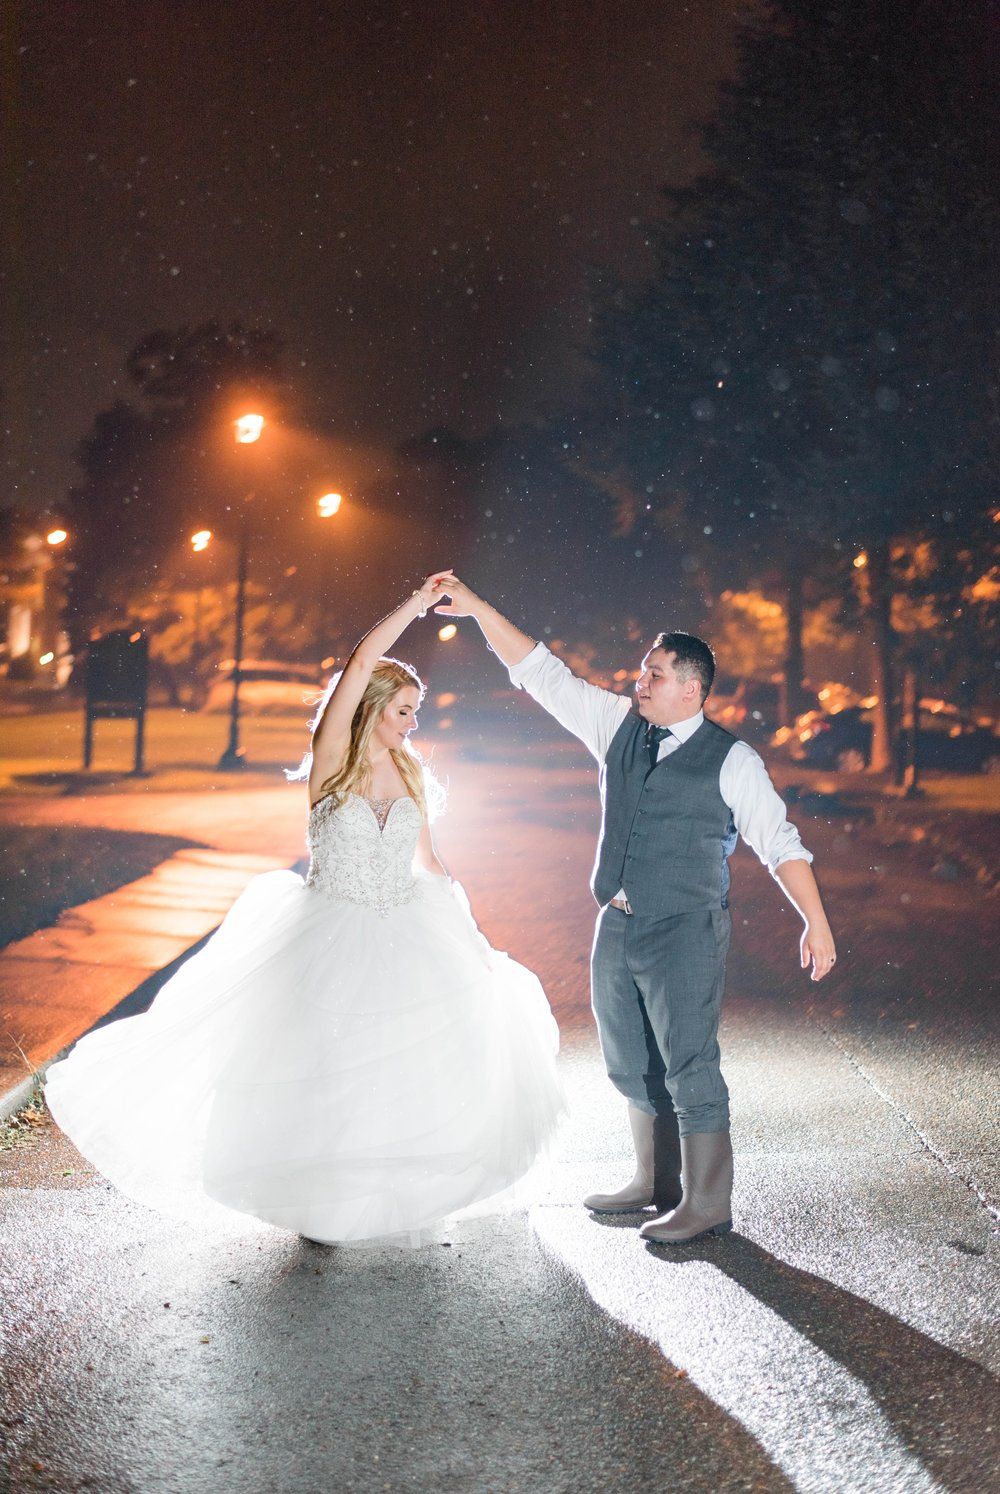 LynchburgVirginia_Virginiaweddingphotographer_michaelkim 21.jpg